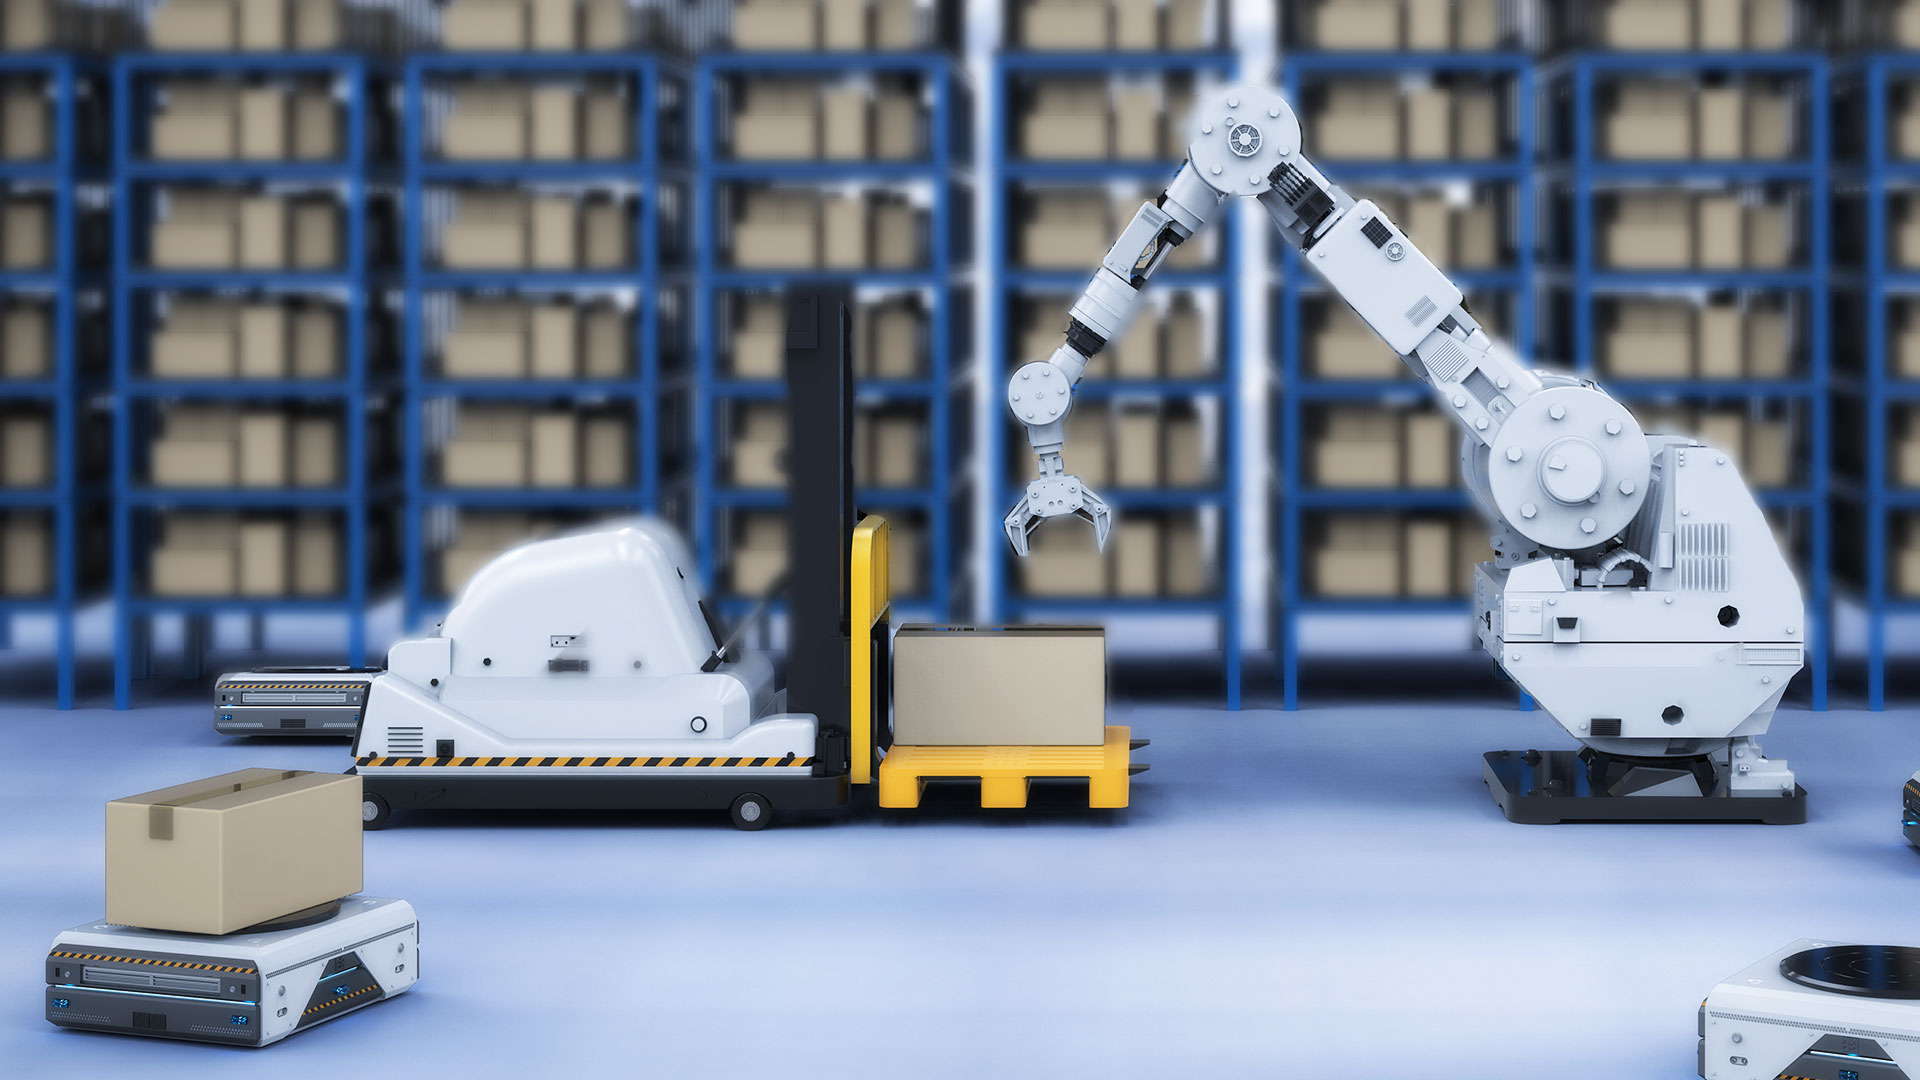 Artificial Intelligence, Robotics, Automation in the Supply Chain